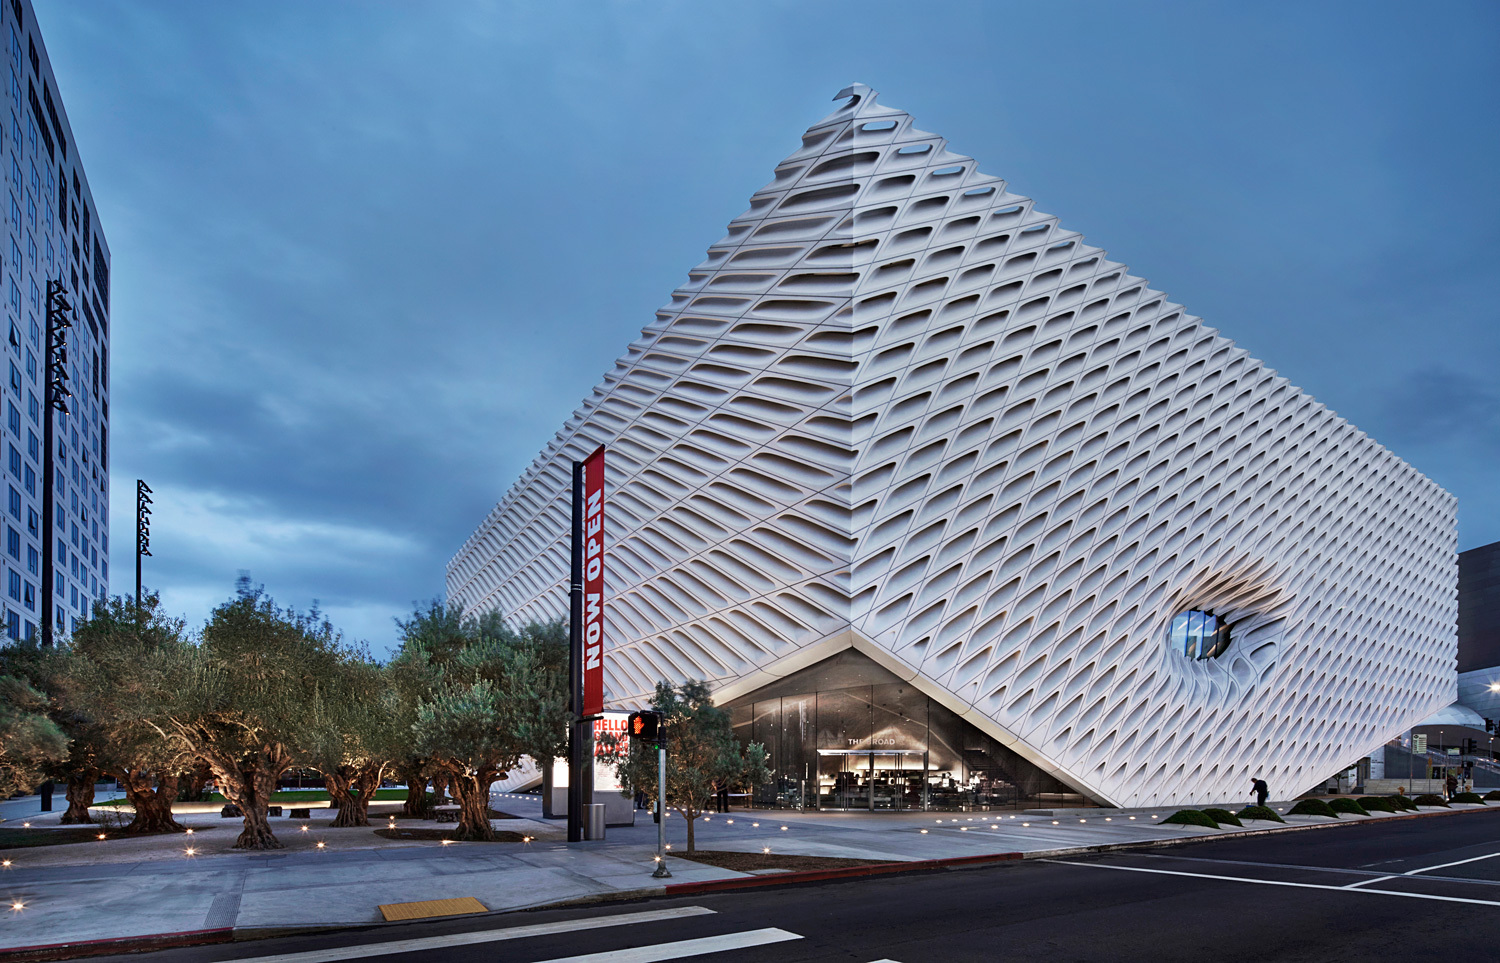 The broad harbin opera house pterodactyl among 2016 la for La architecture